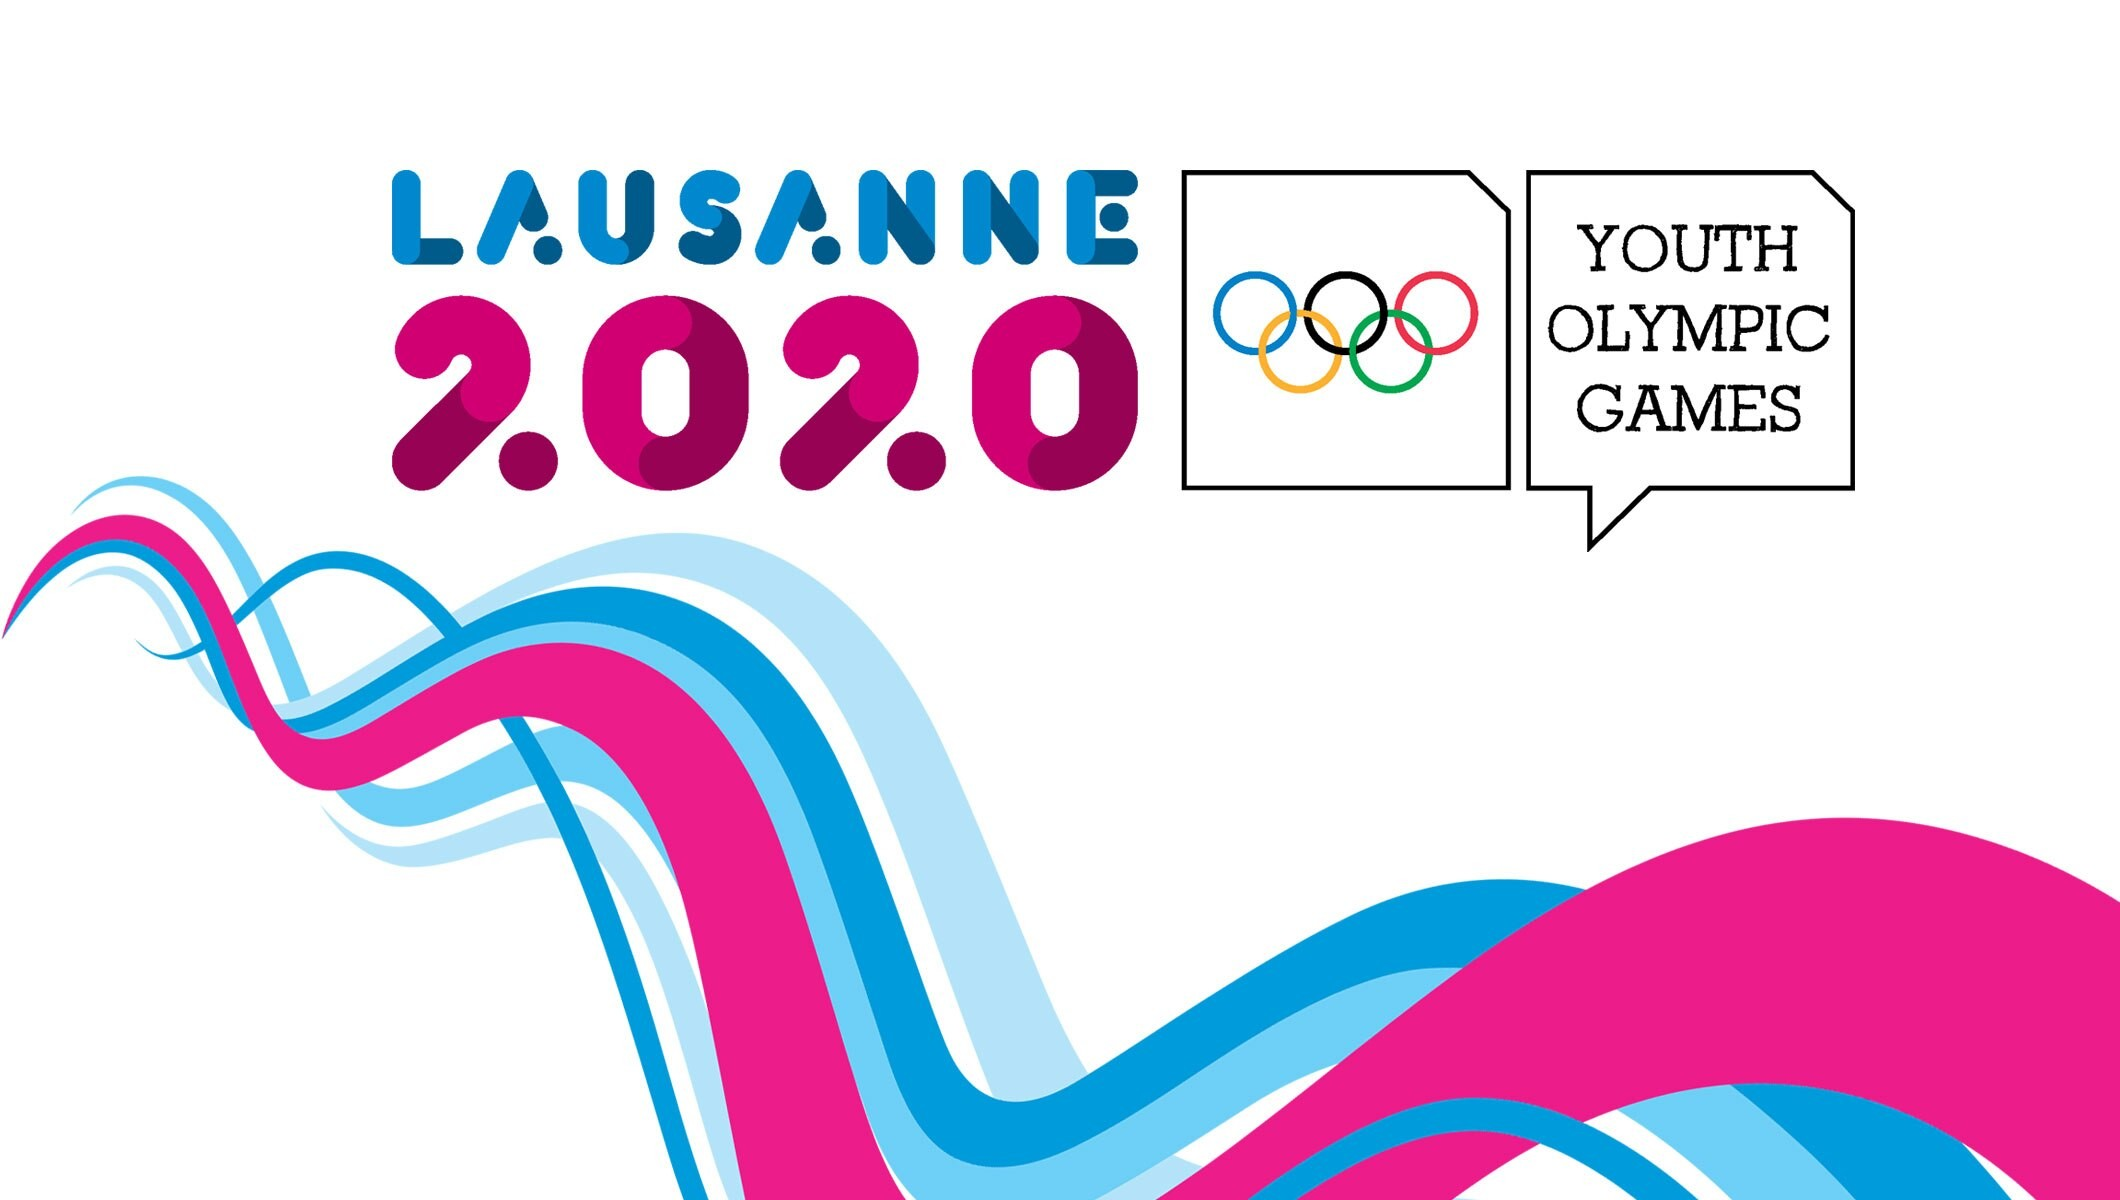 Calendario 2020 Y 2021 Vector Más Reciente Lausanne 2020 Youth Olympic Games Yog Of Calendario 2020 Y 2021 Vector Más Populares Tesa 300gl User Manual Ebook